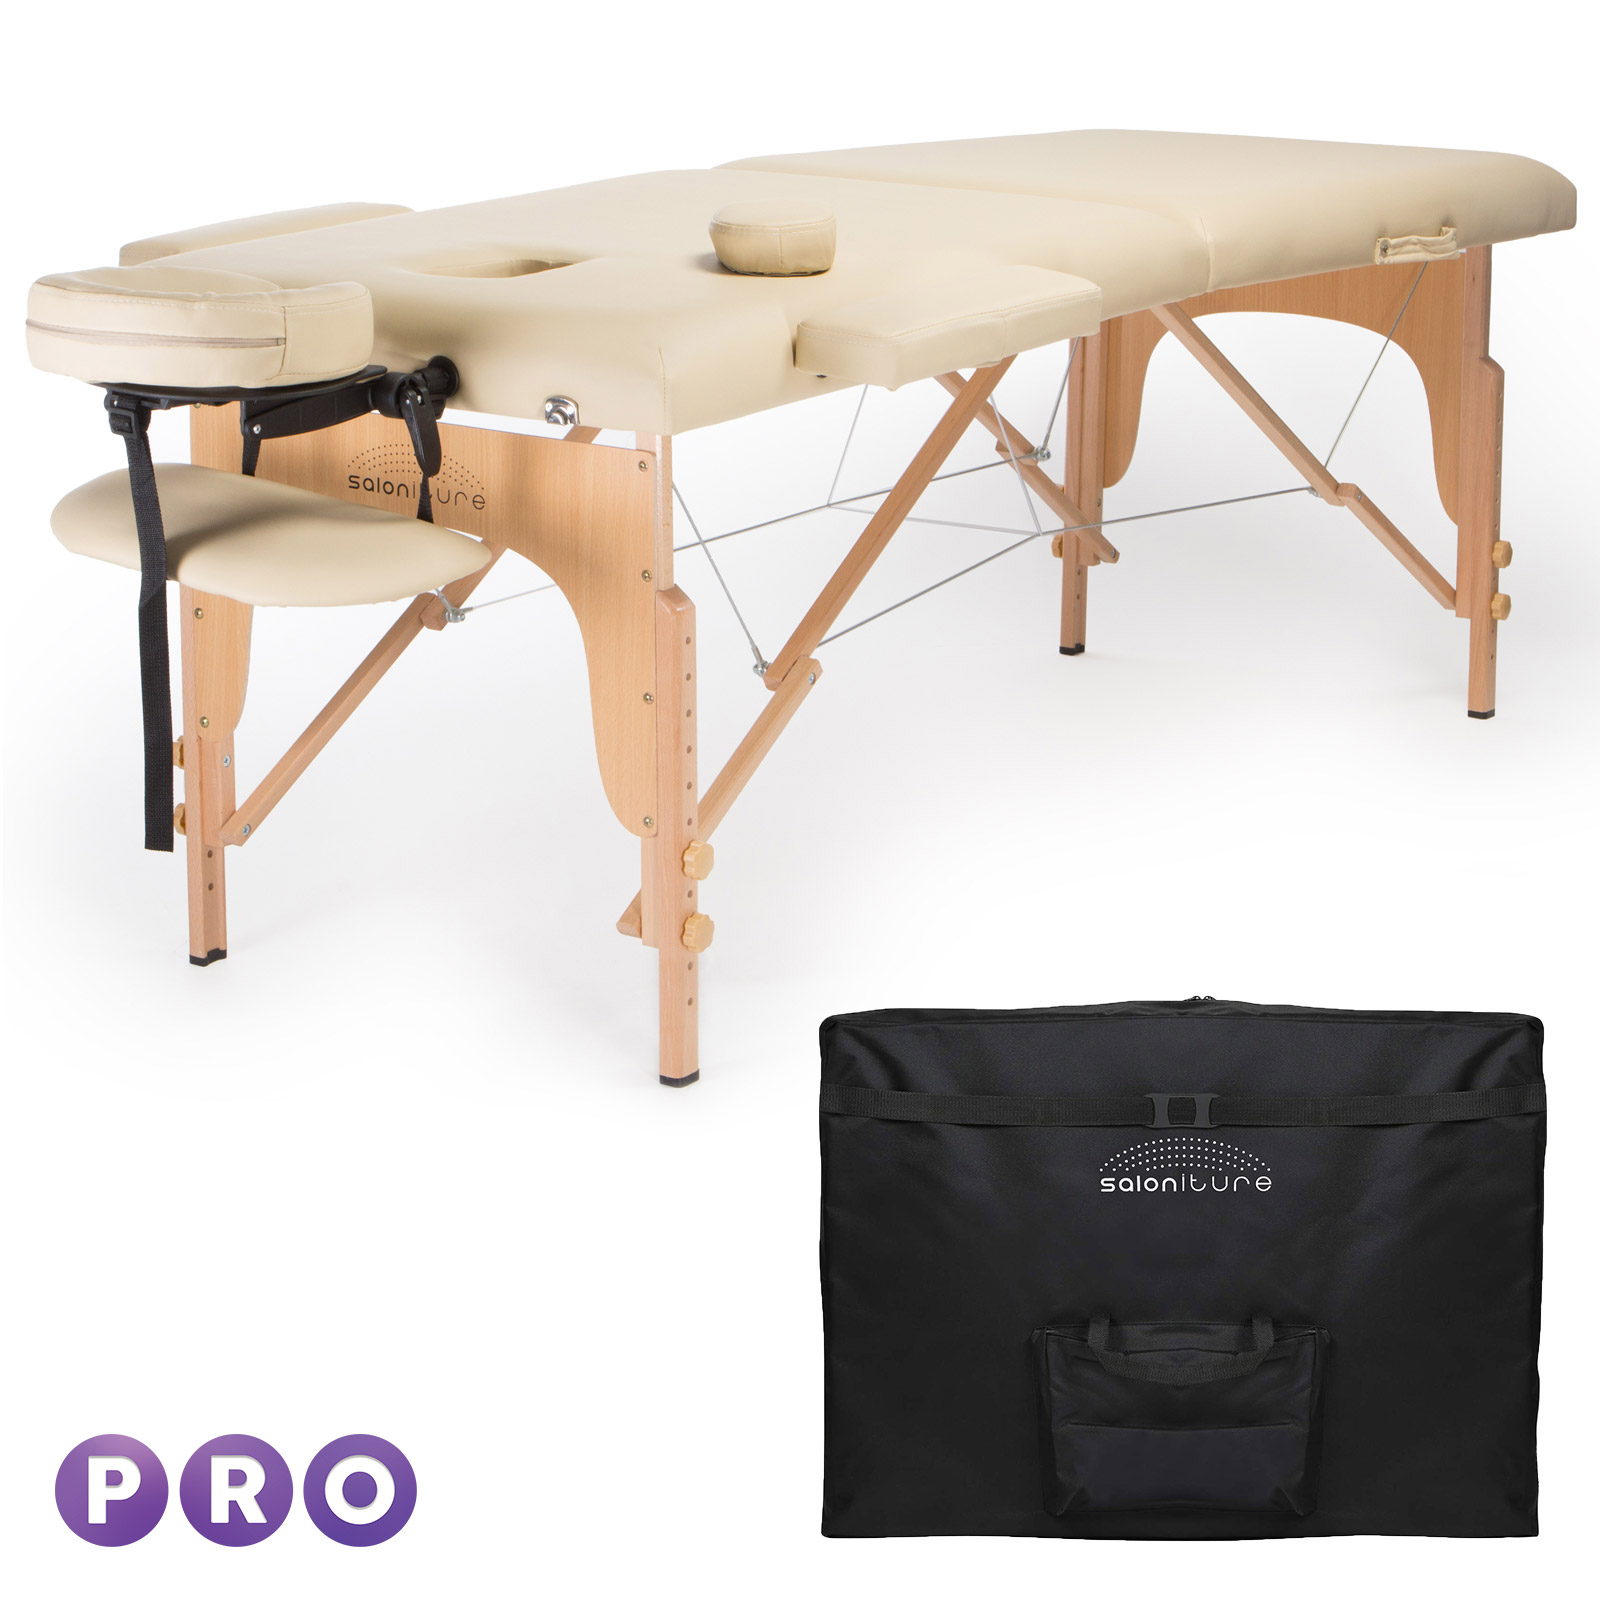 Portable Massage Table With Carrying Case Ebay